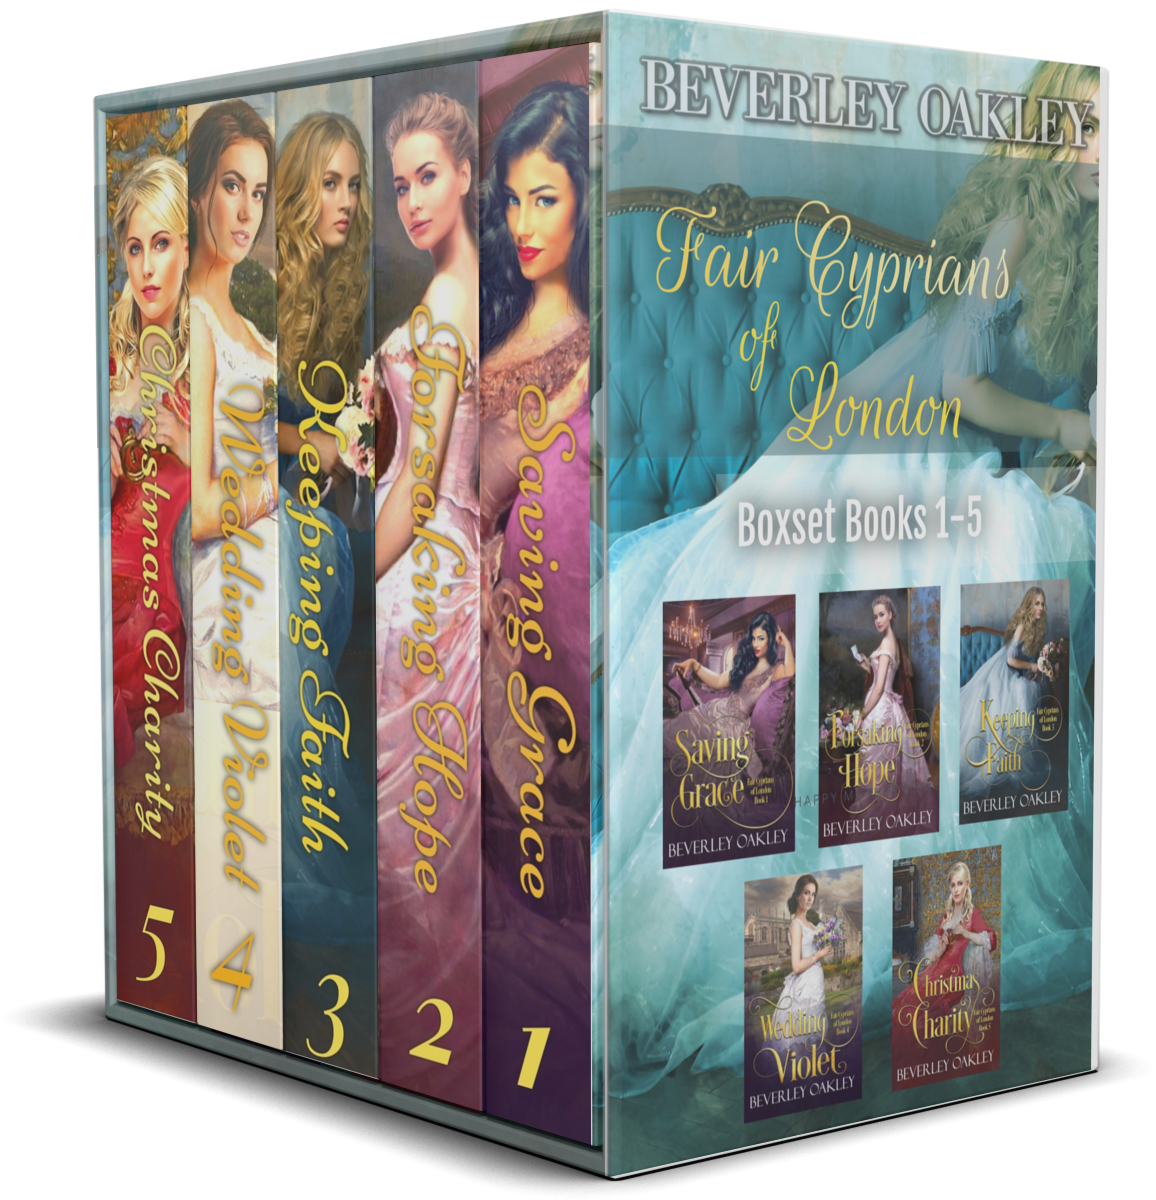 Fair Cyprians of London Boxset 1-5